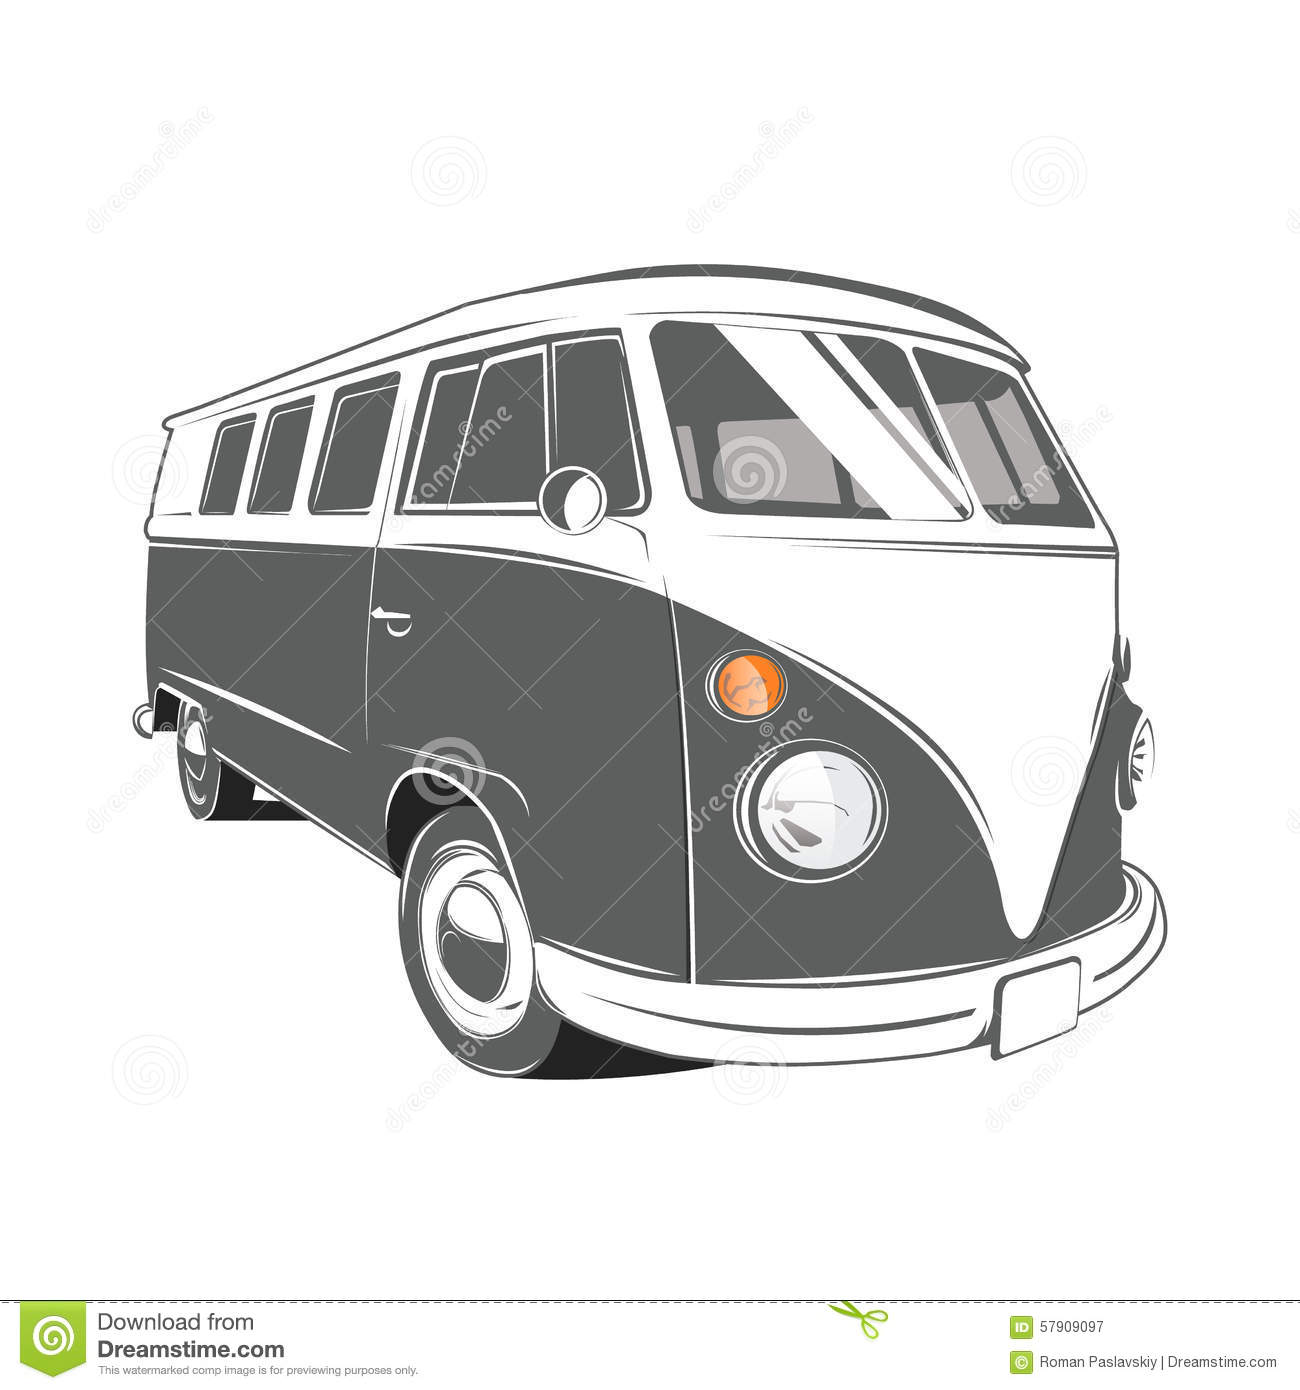 Classic Camper Van In Vintage Retro Style Vector Illustration Royalty Free Stock Photography